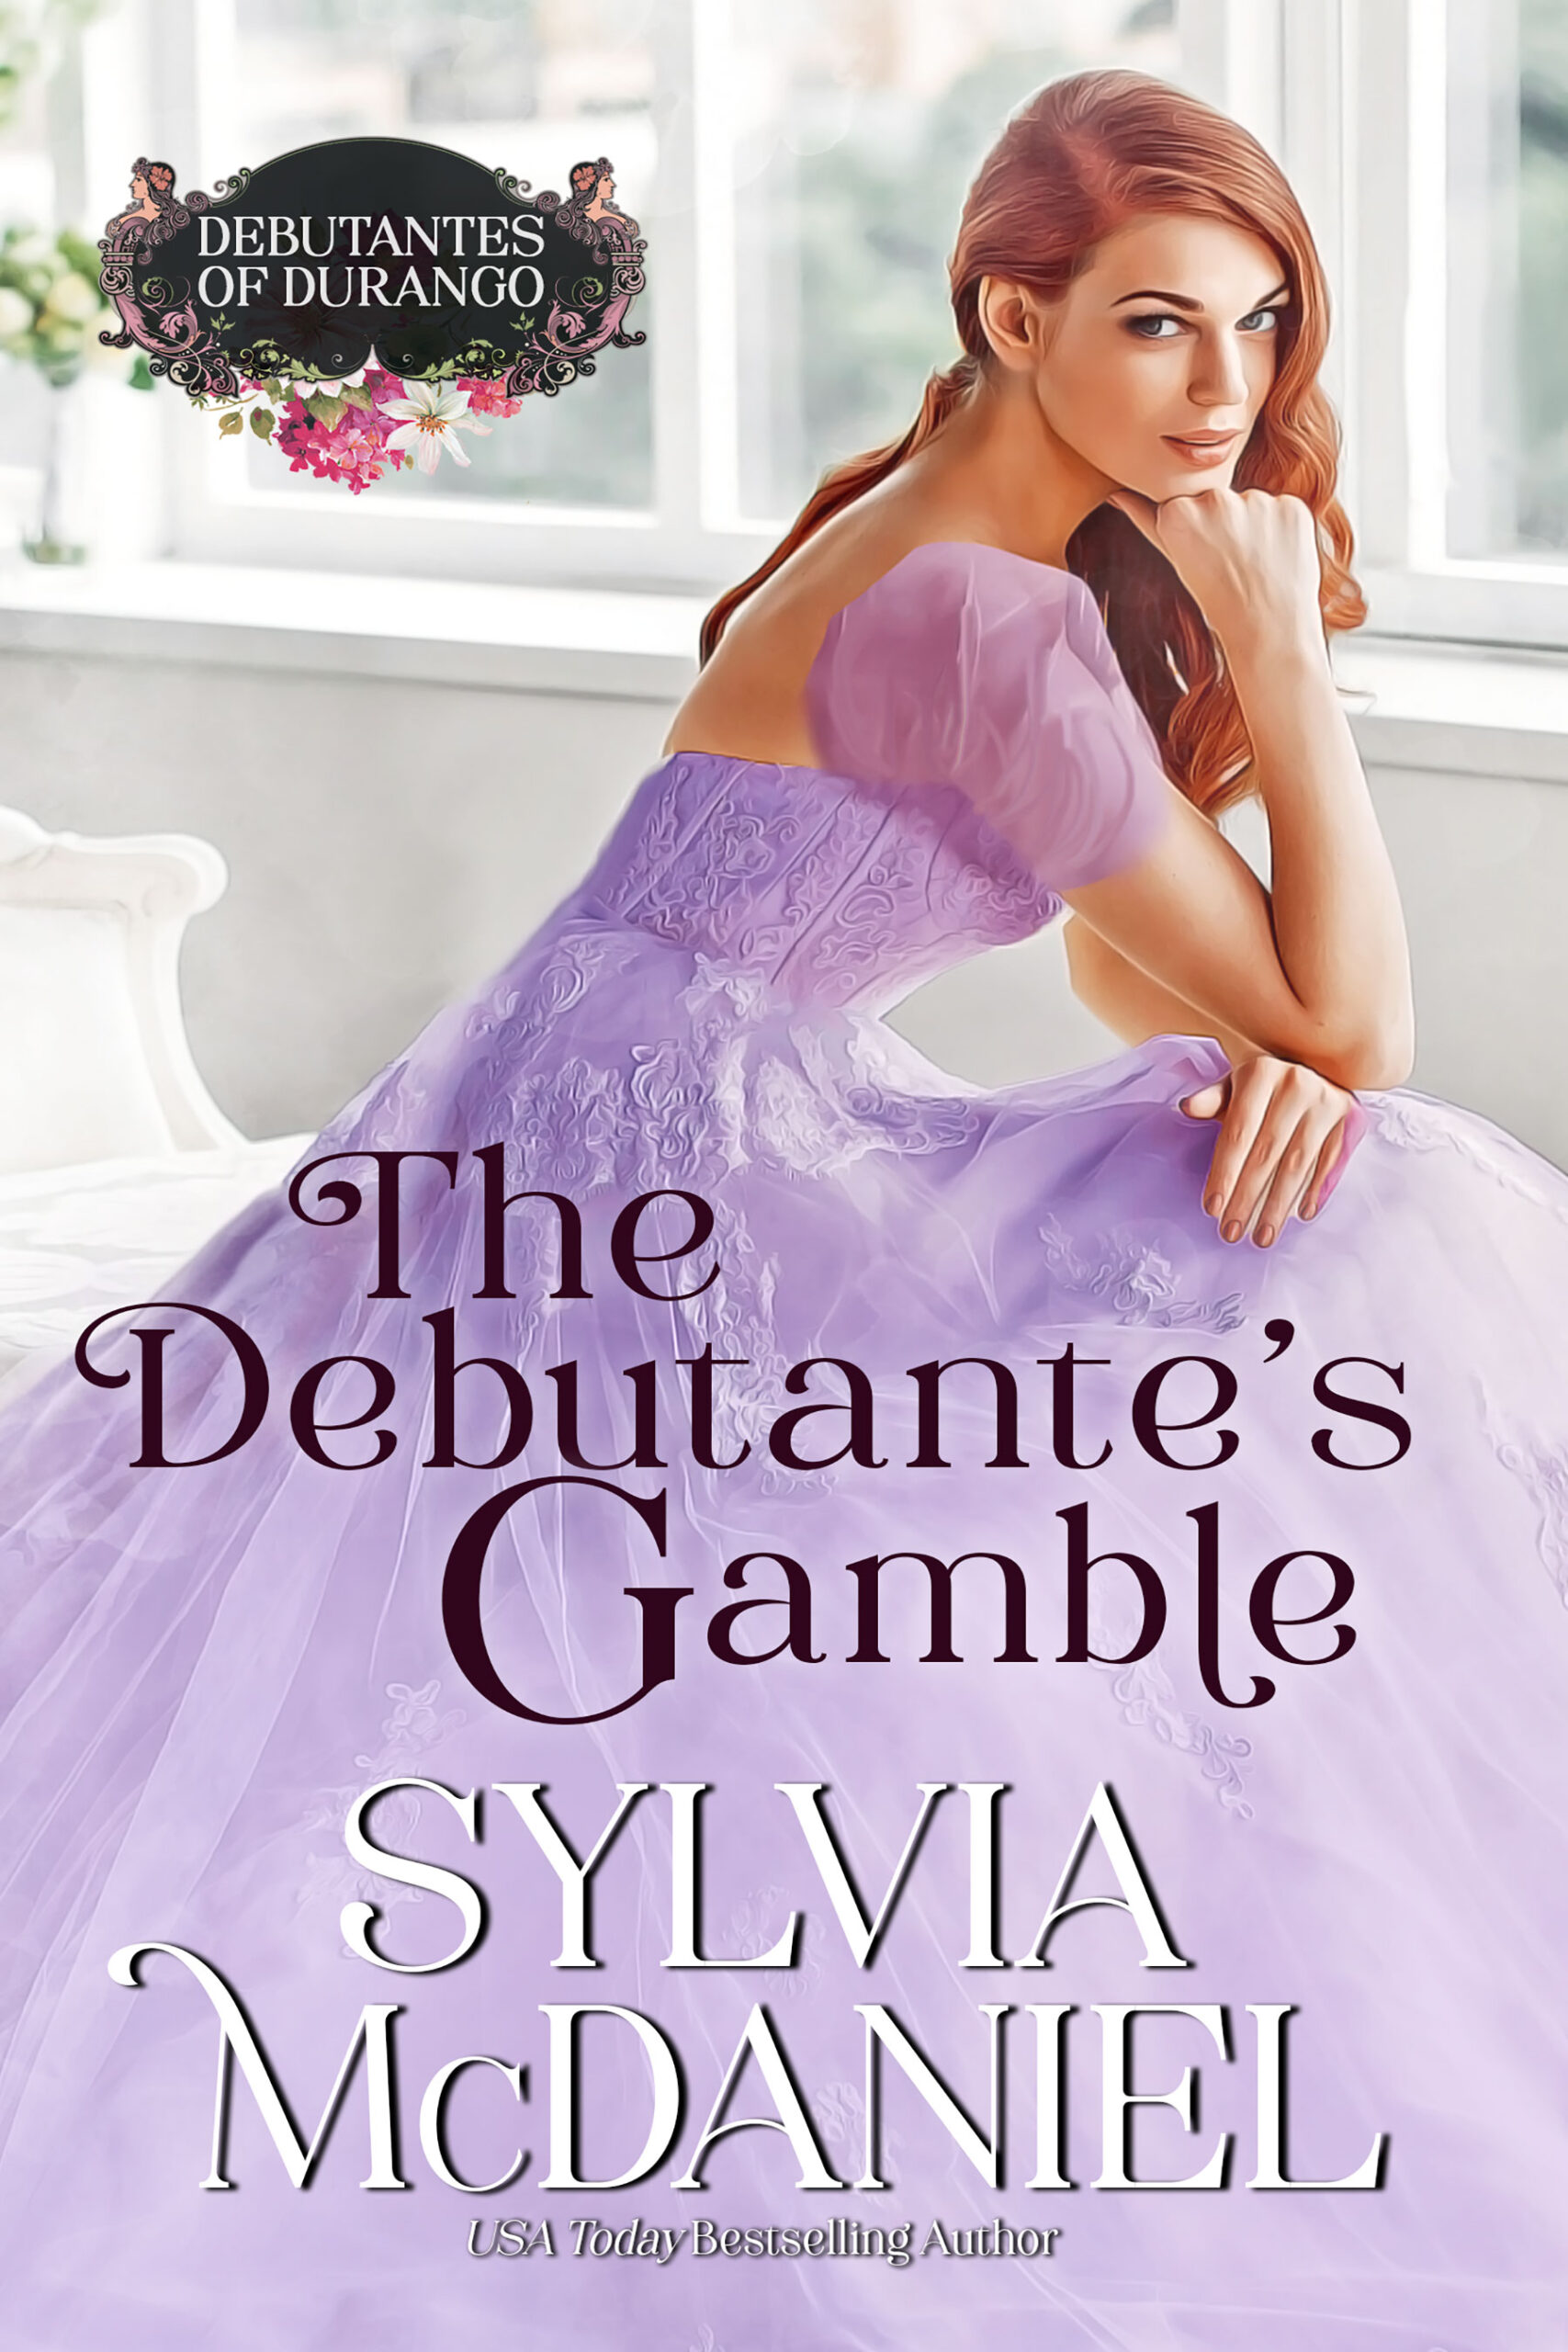 Cover of the Debutante's Gamble by Sylvia McDaniel. Red headed woman in a purple dress gazing back.